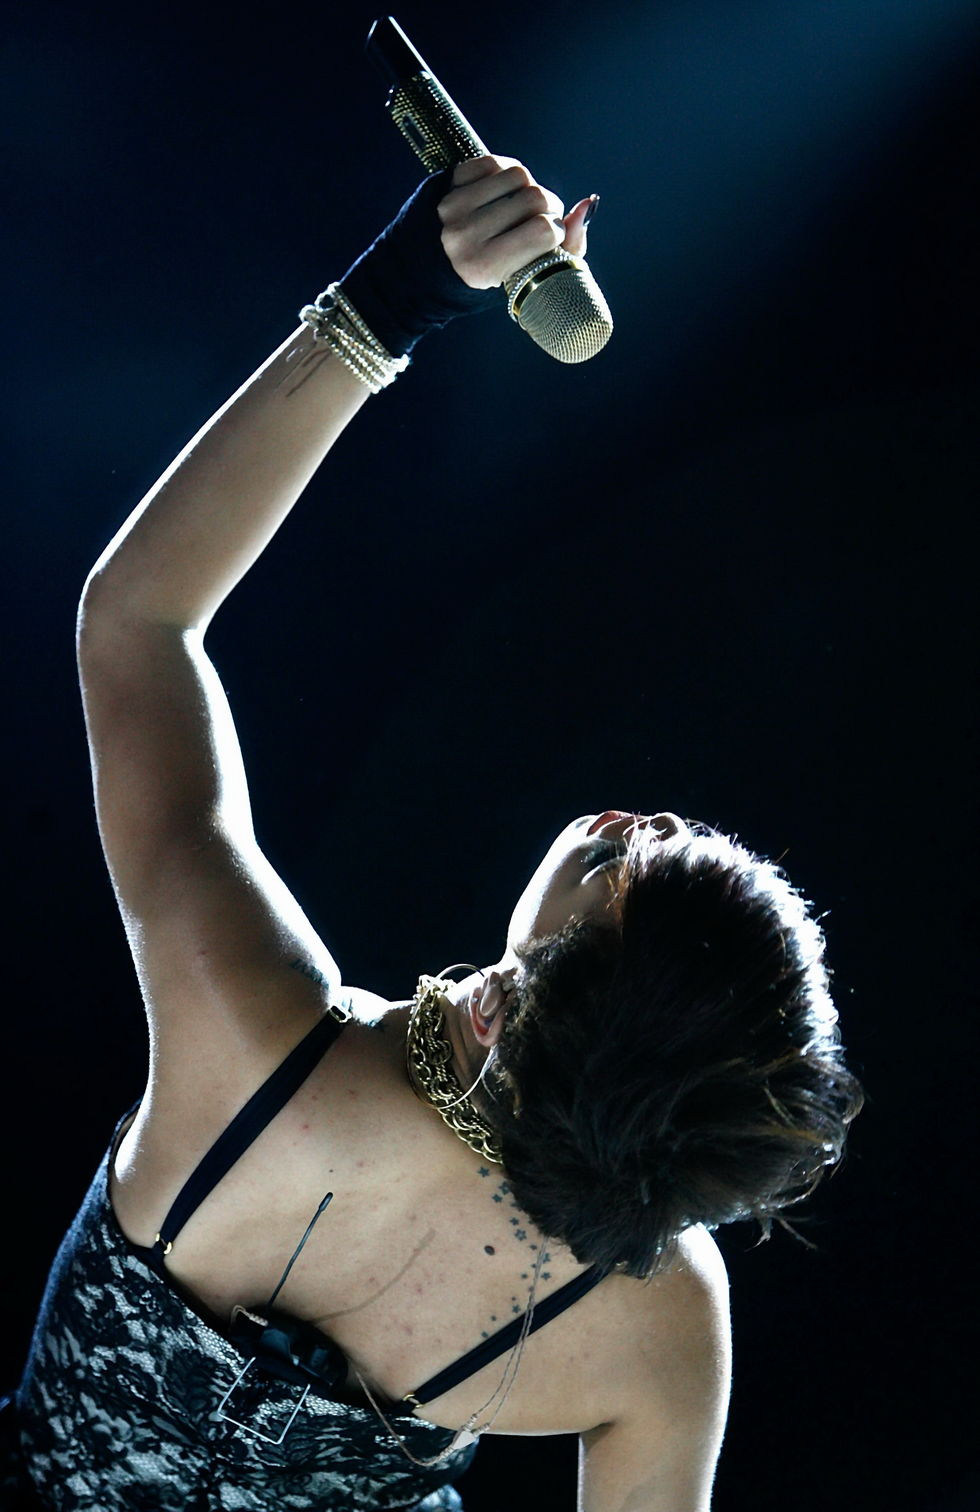 rihanna-performs-at-the-2008-essence-music-festival-in-new-orleans-05